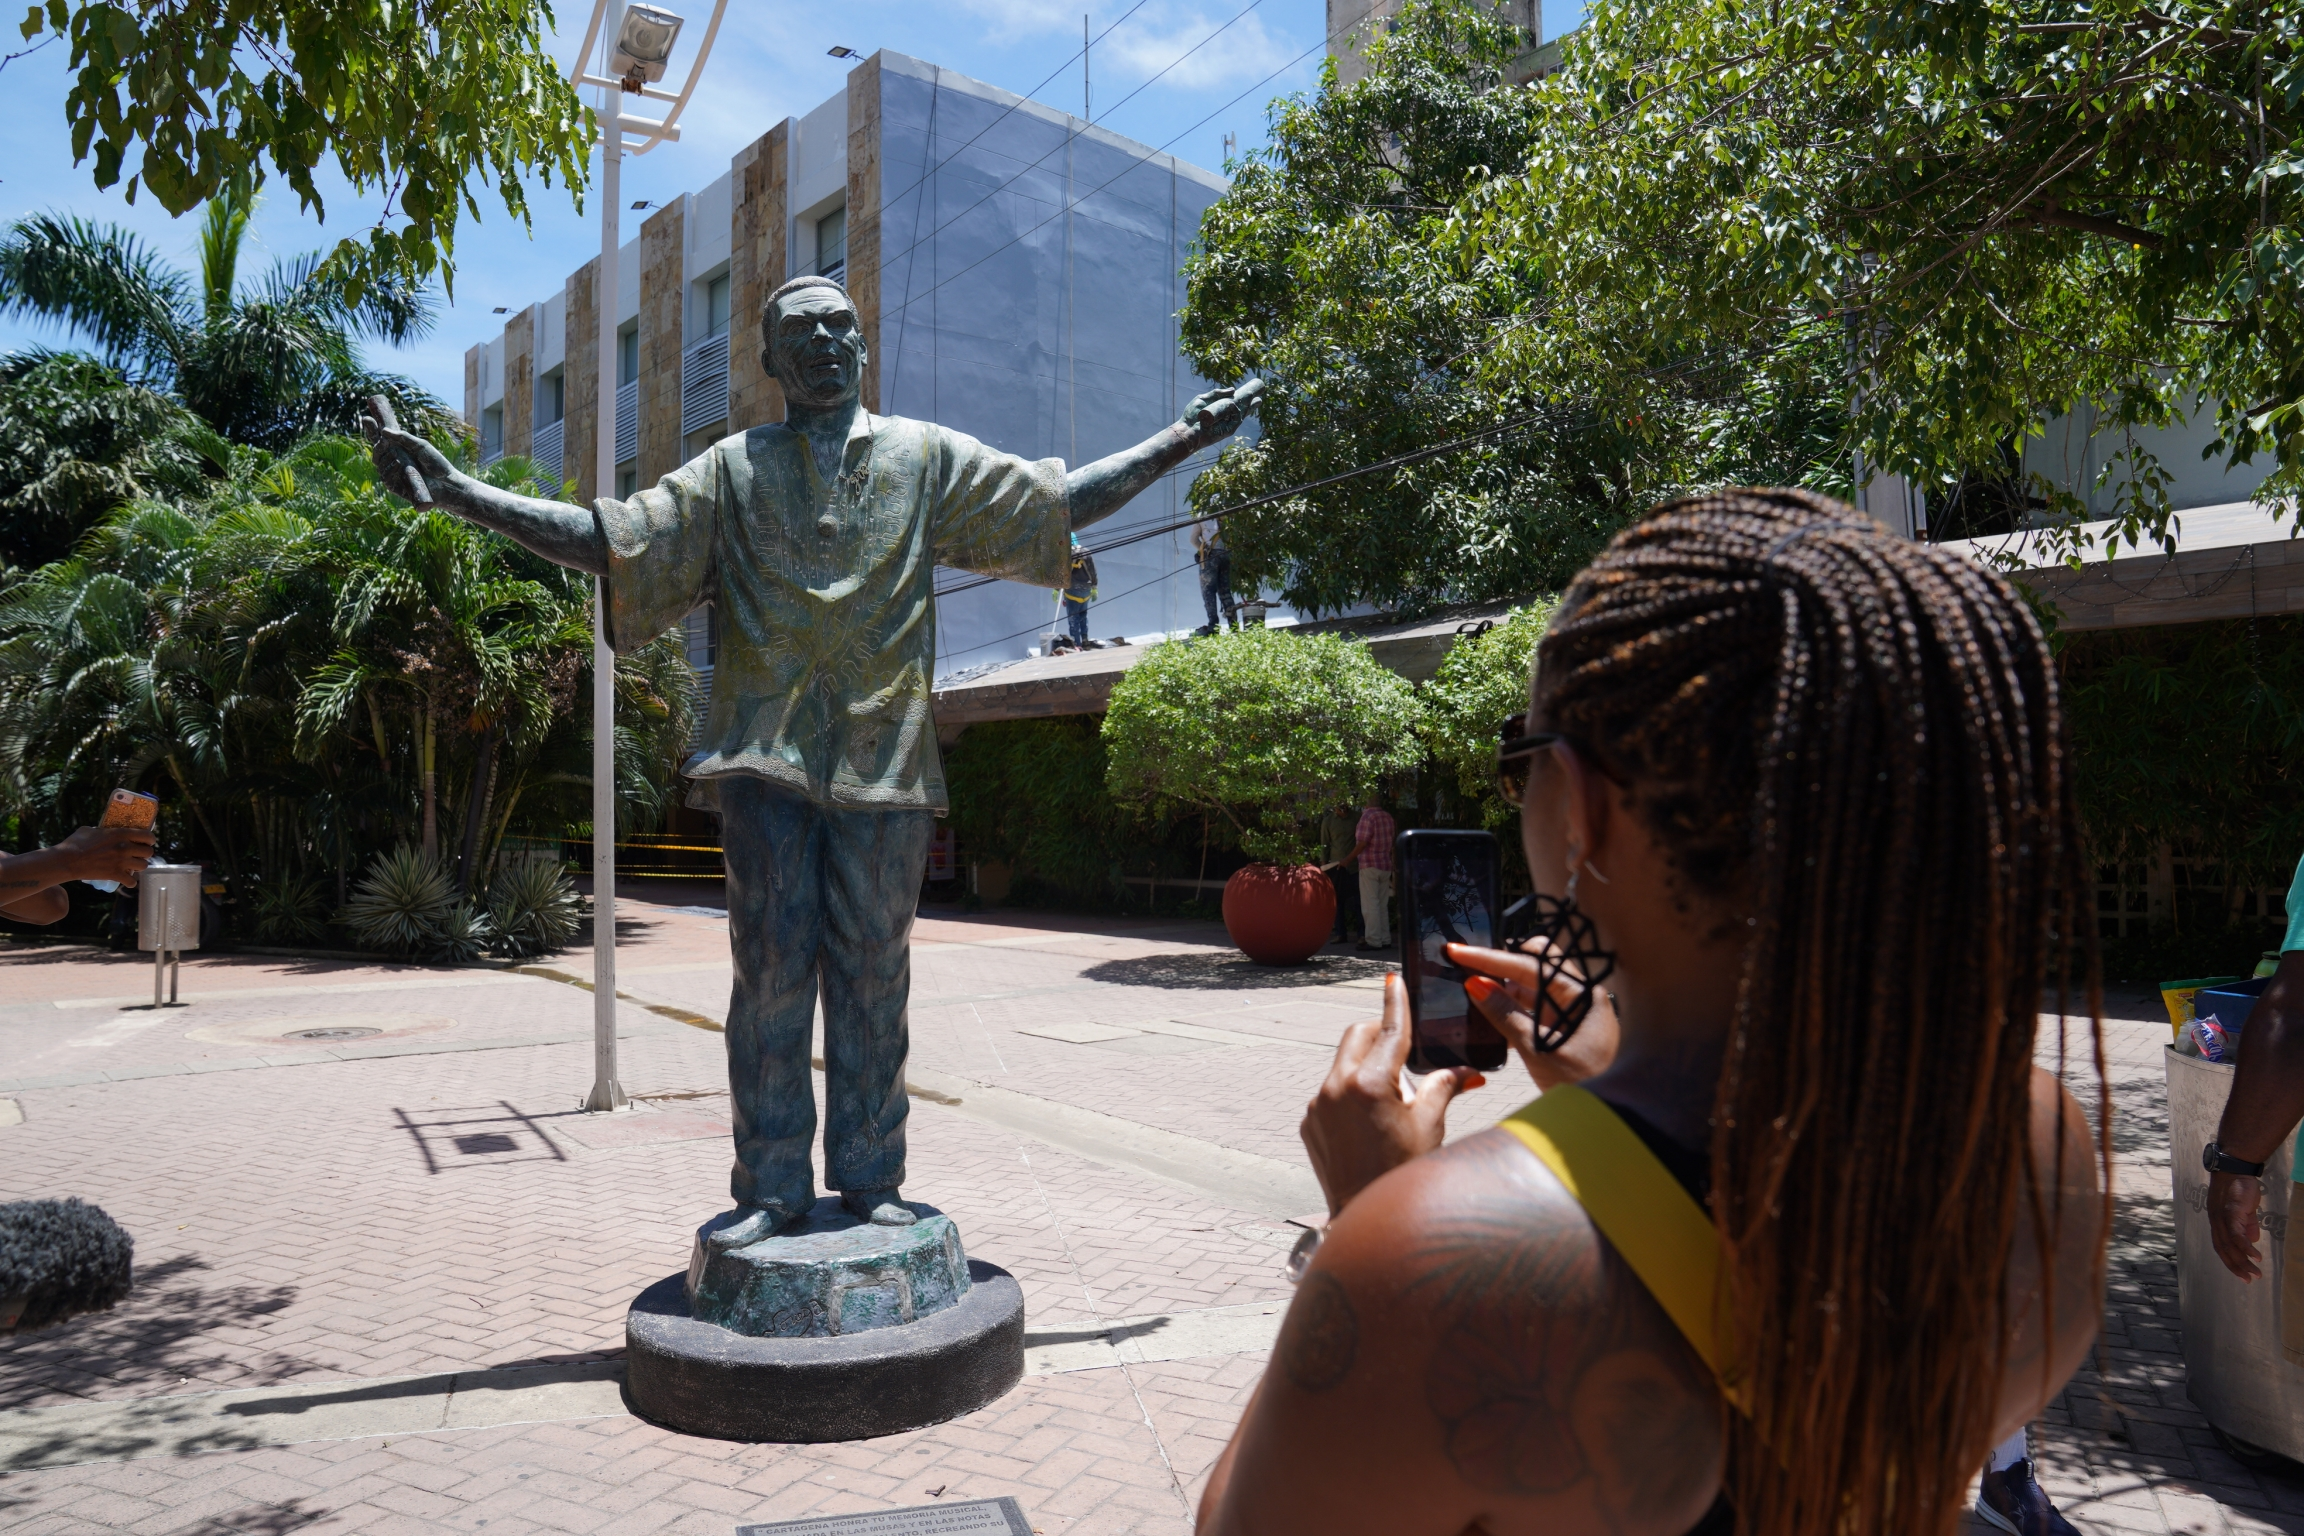 Rocha's tour passes by the statue of Joe Arroyo, one of Colombia's most famous musicians